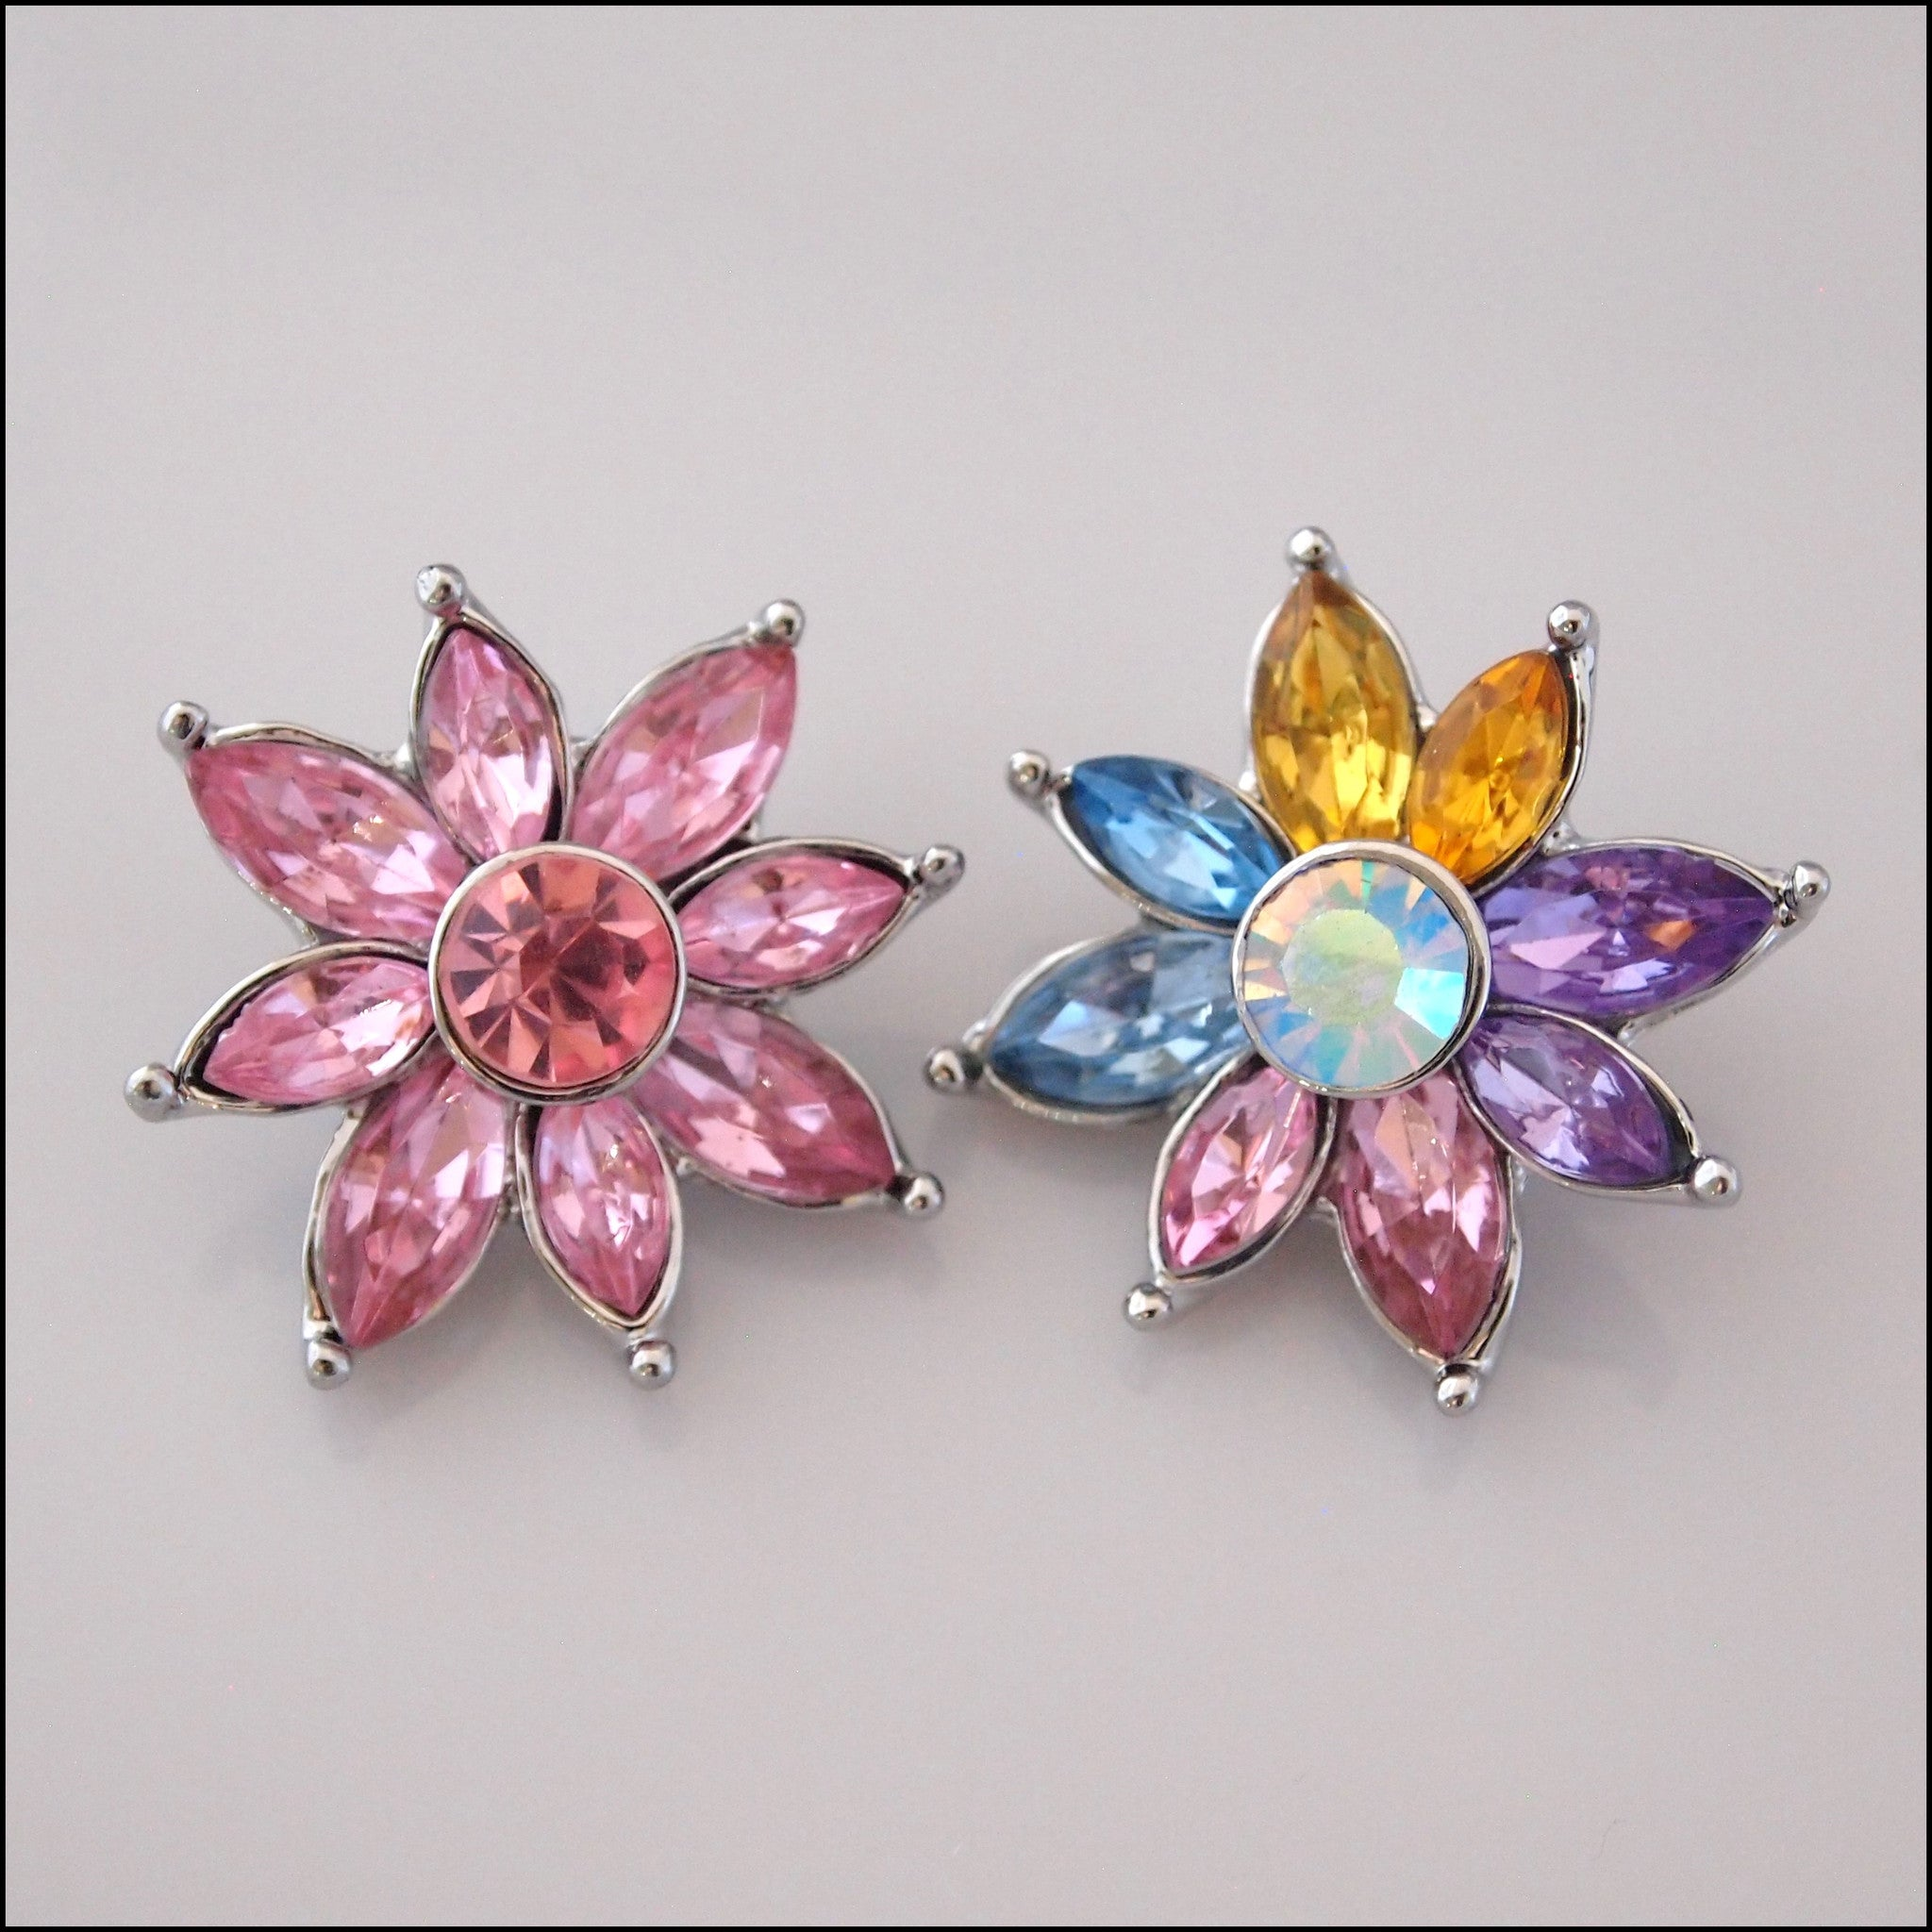 Deluxe Crystal Flower Snap Button - Find Something Special